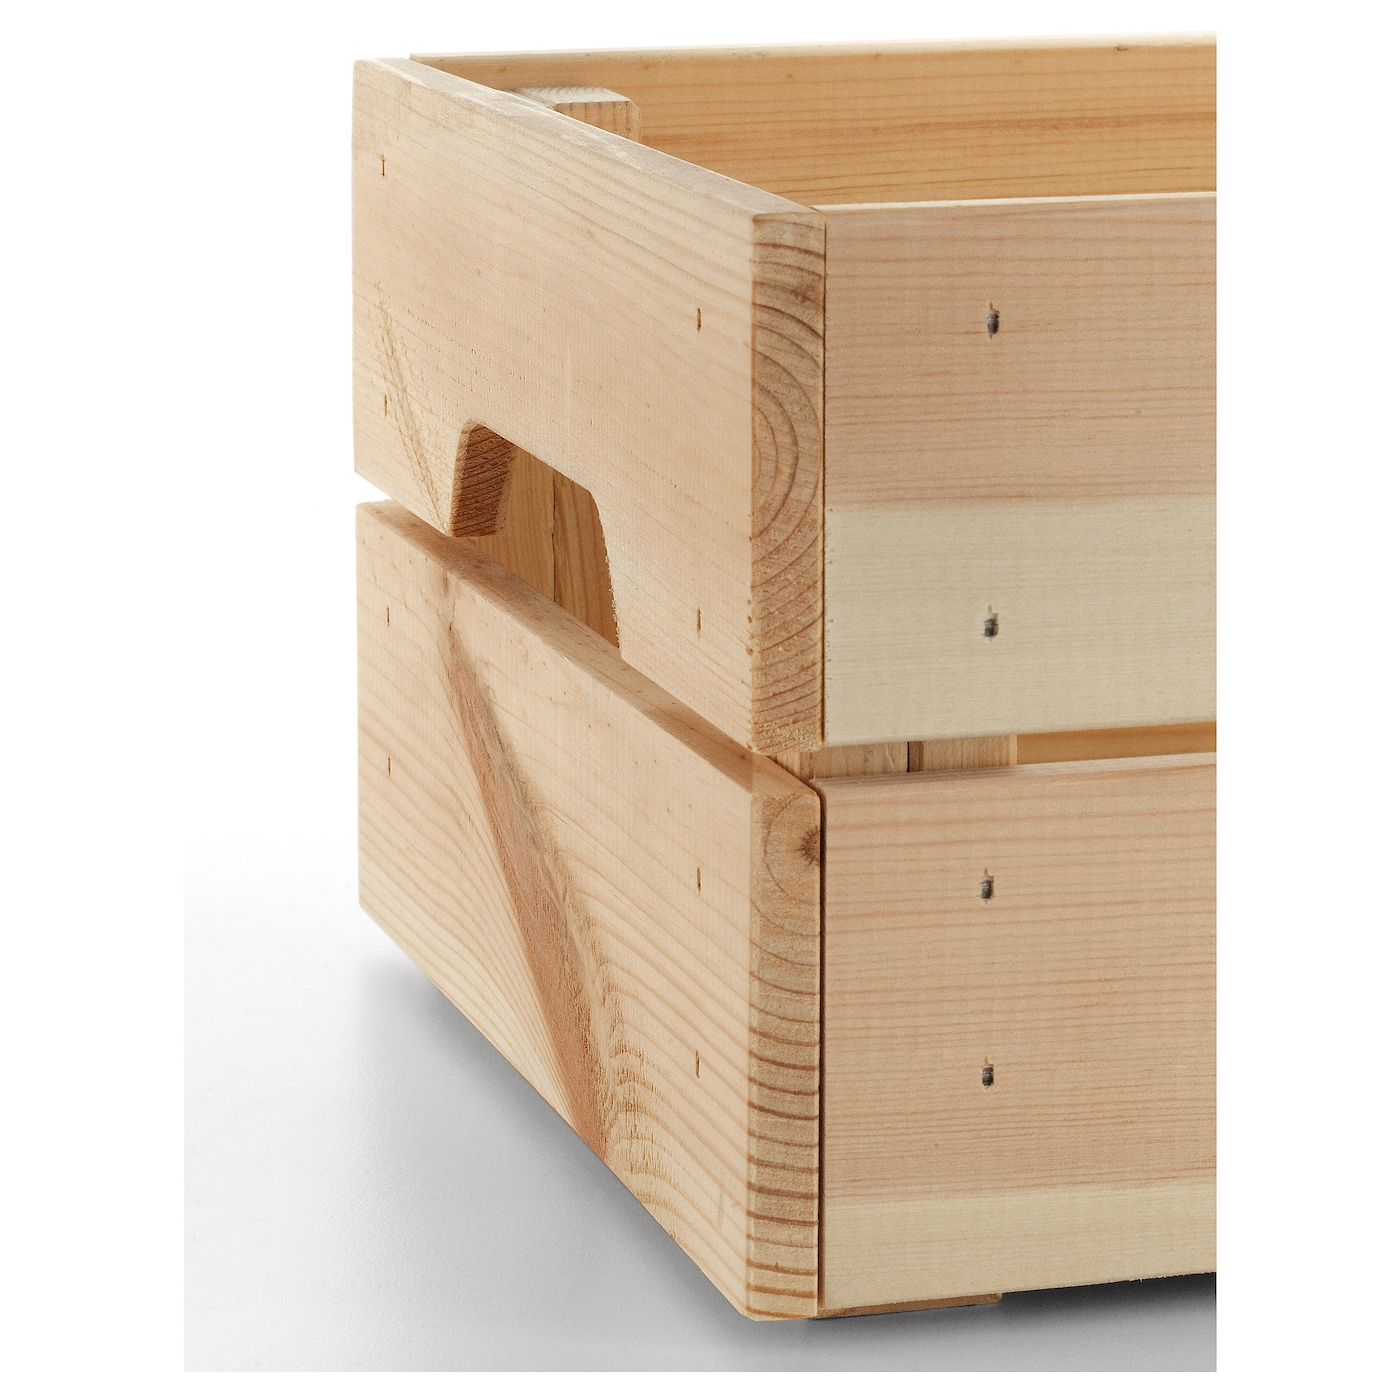 IKEA KNAGGLIG box Perfect for storing cans and bottles since the wooden box is sturdy and durable.